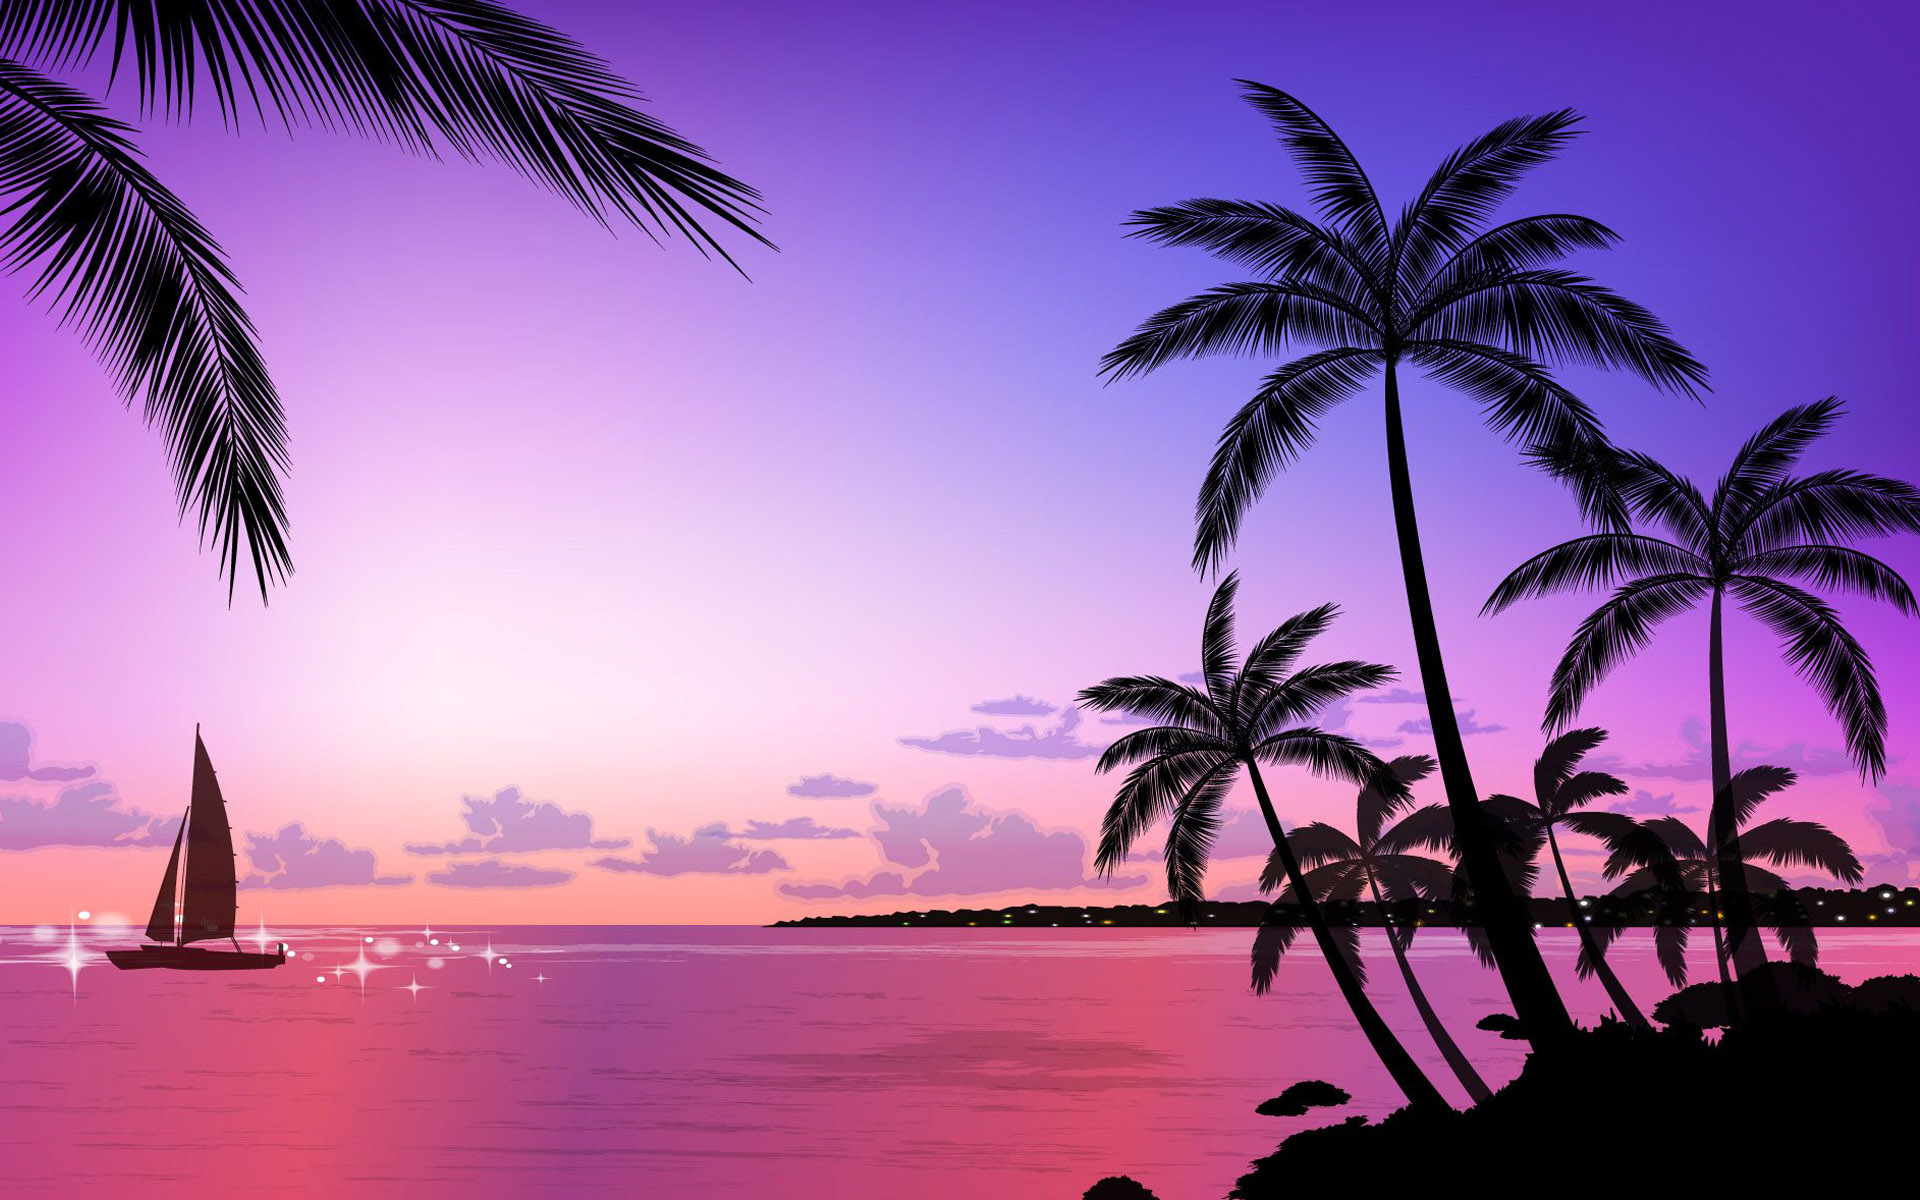 Tropical Beach Sunset Wallpaper 1920x1200